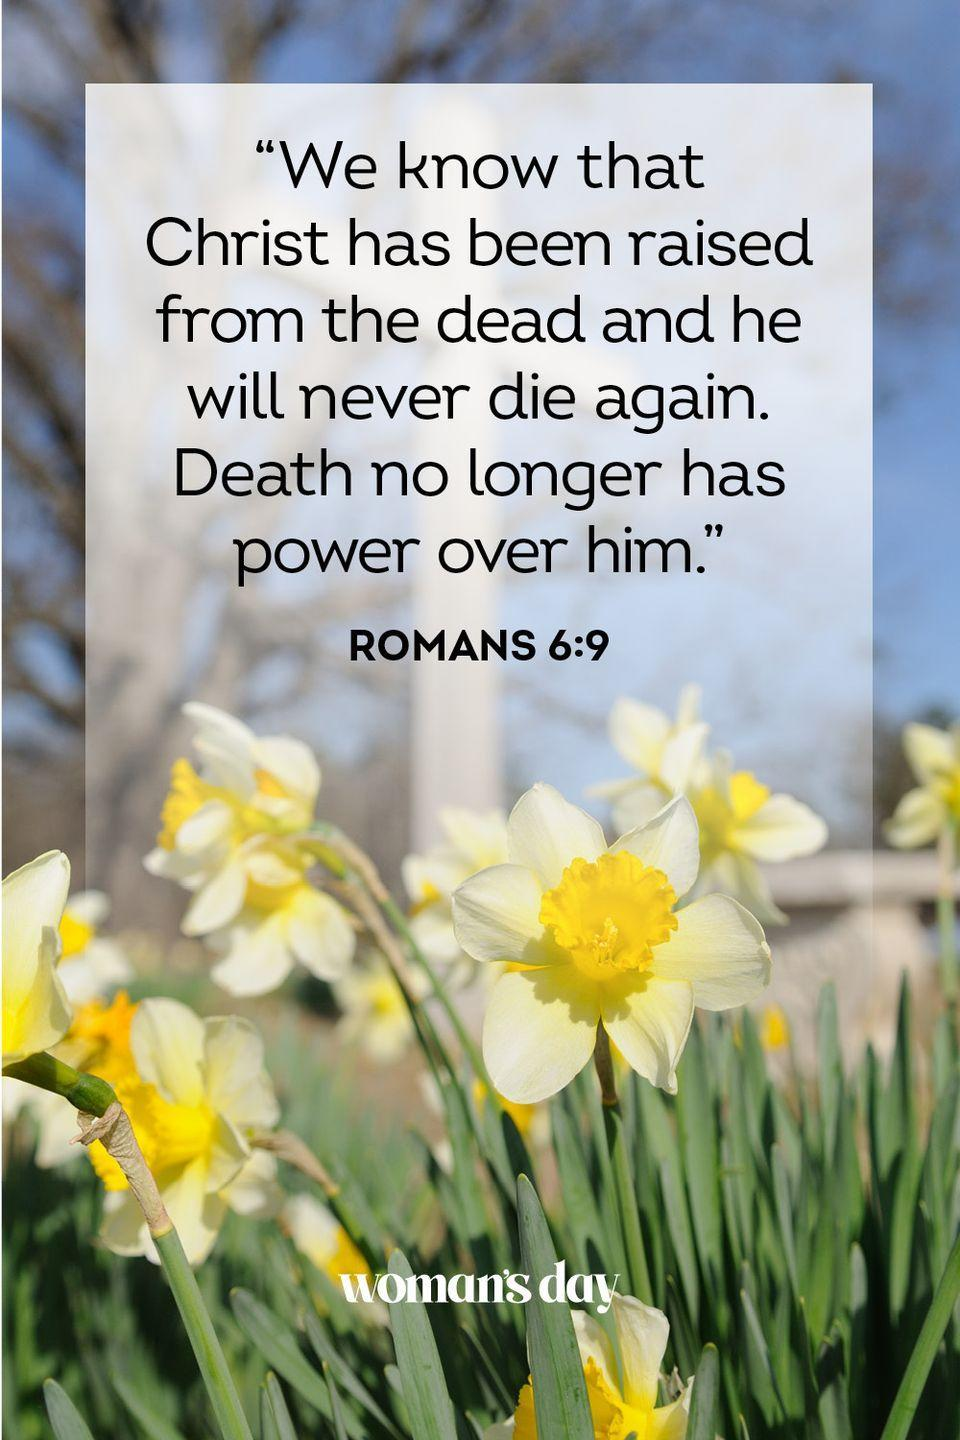 "<p>""We know that Christ has been raised from the dead and he will never die again. Death no longer has power over him."" — Romans 6:9</p>"